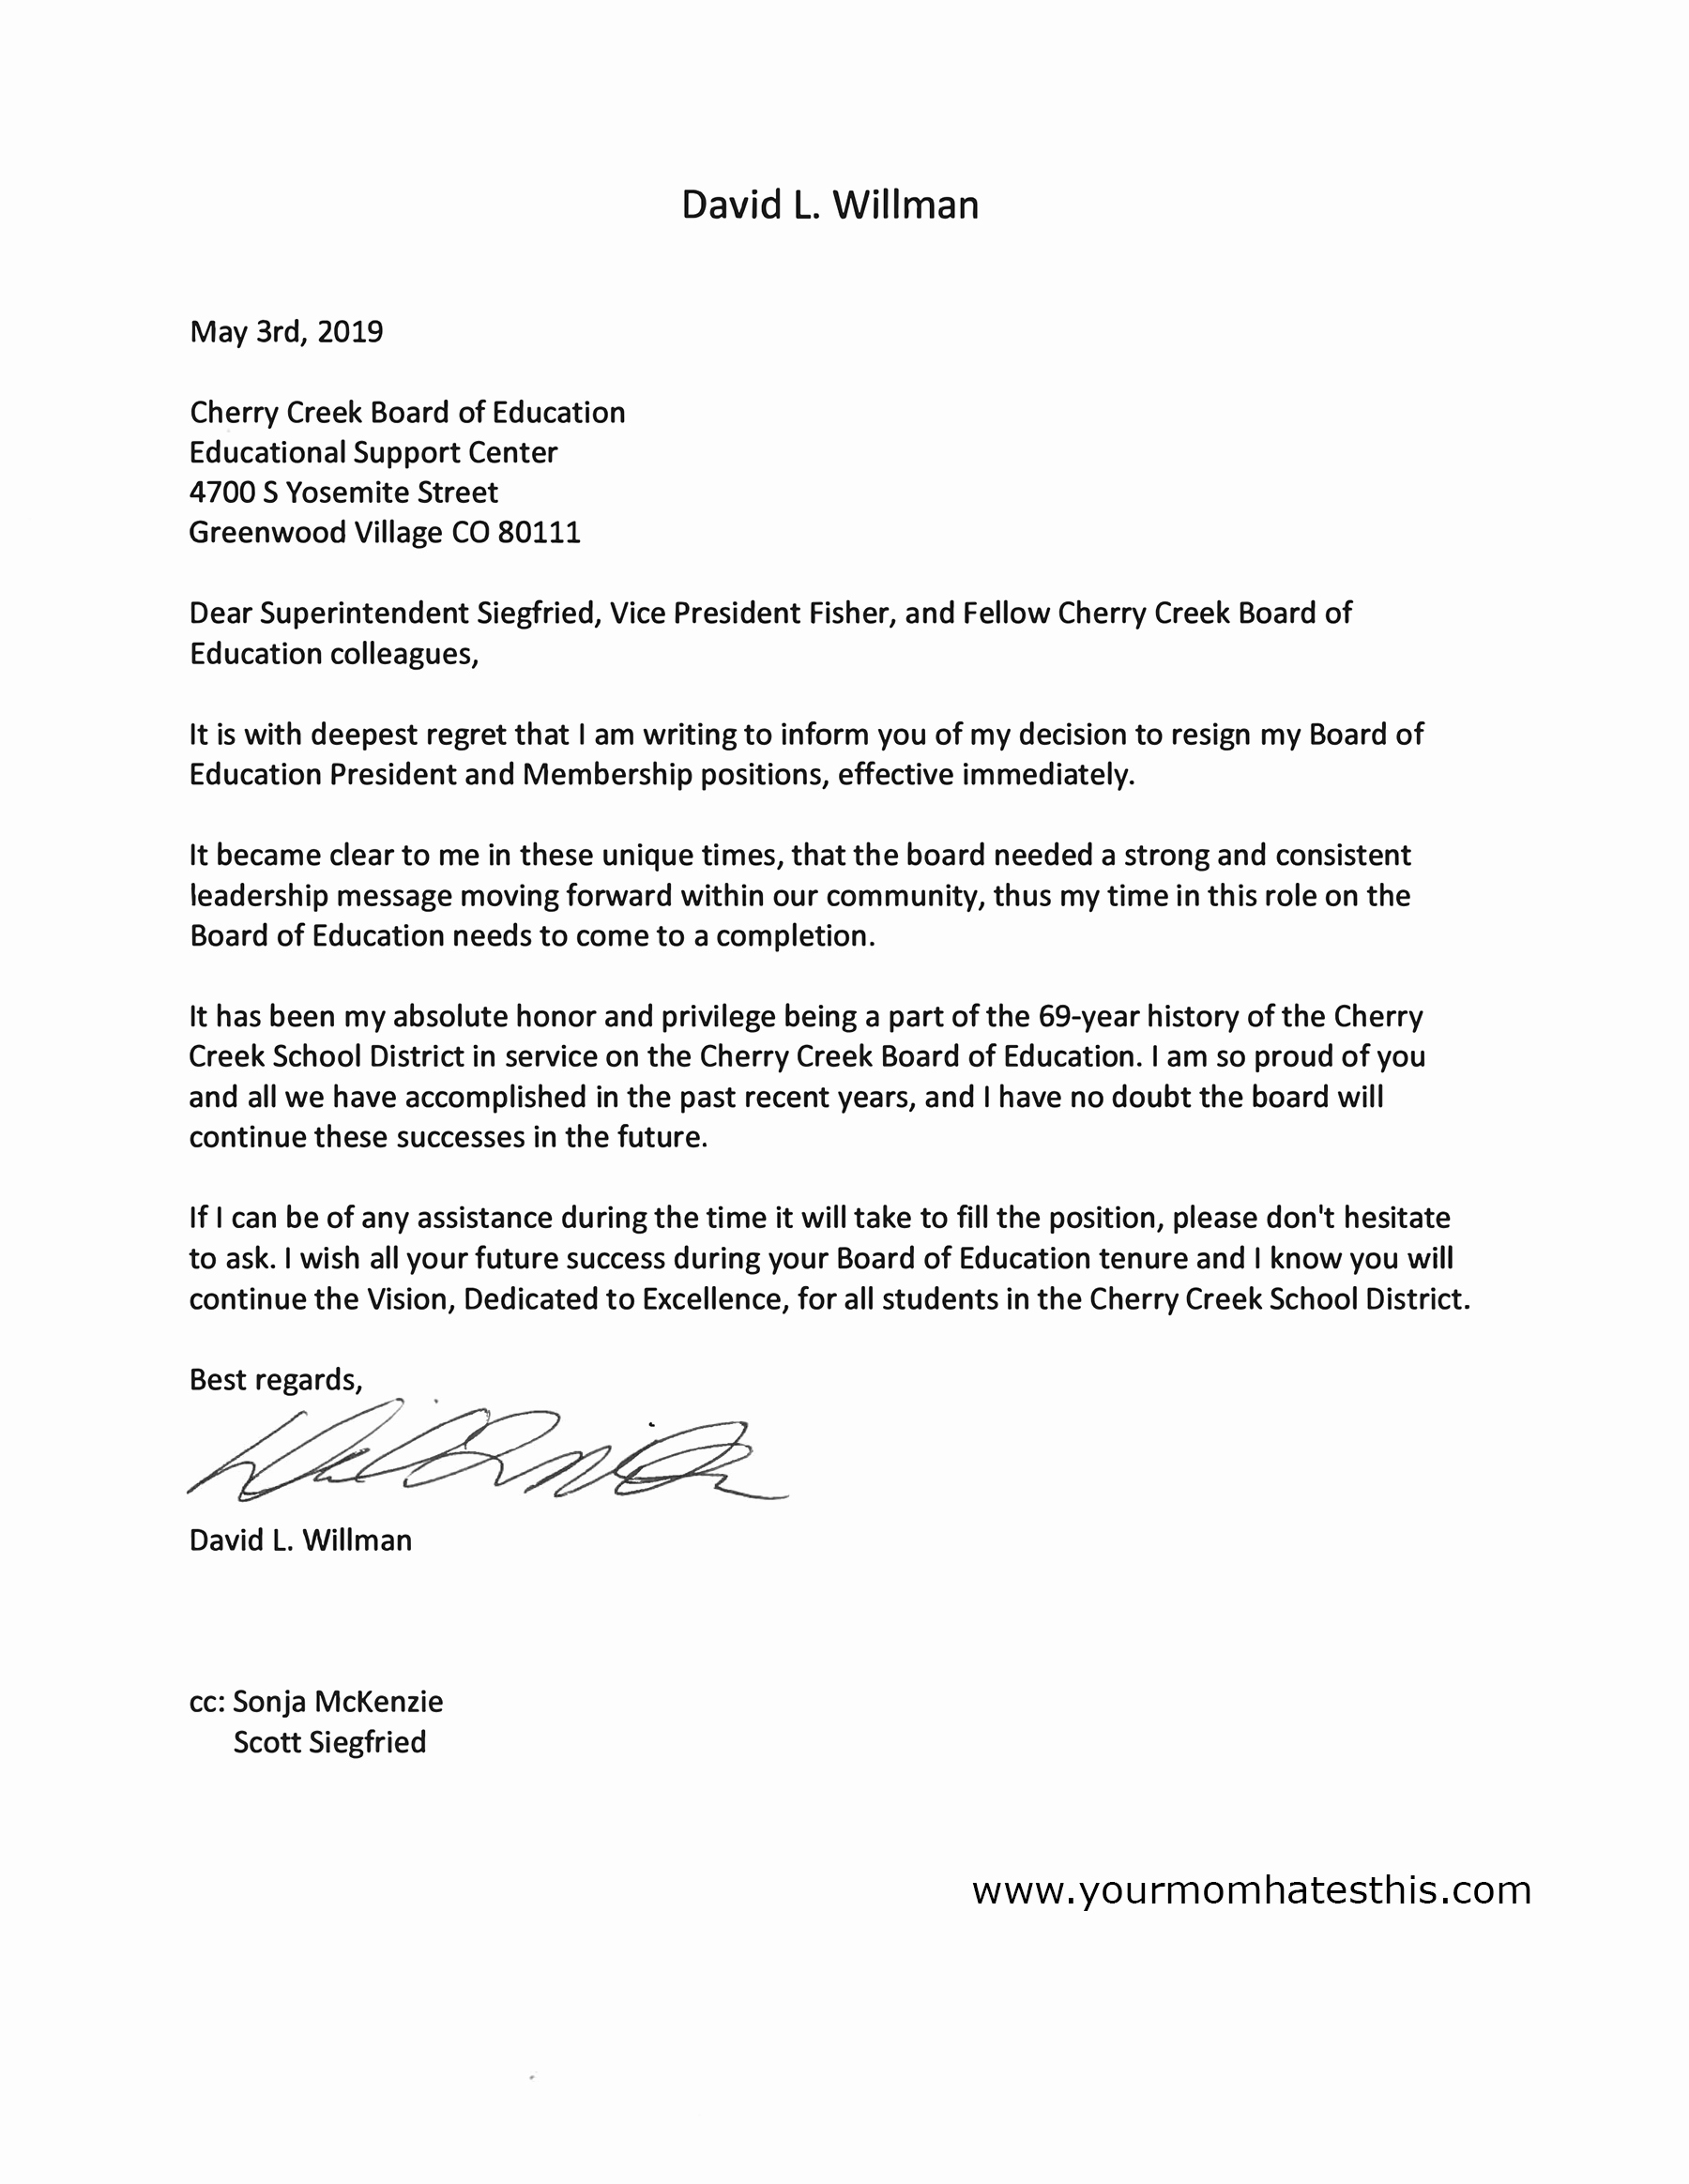 Professional Resignation Letter Template Inspirational Download Resignation Letter Samples